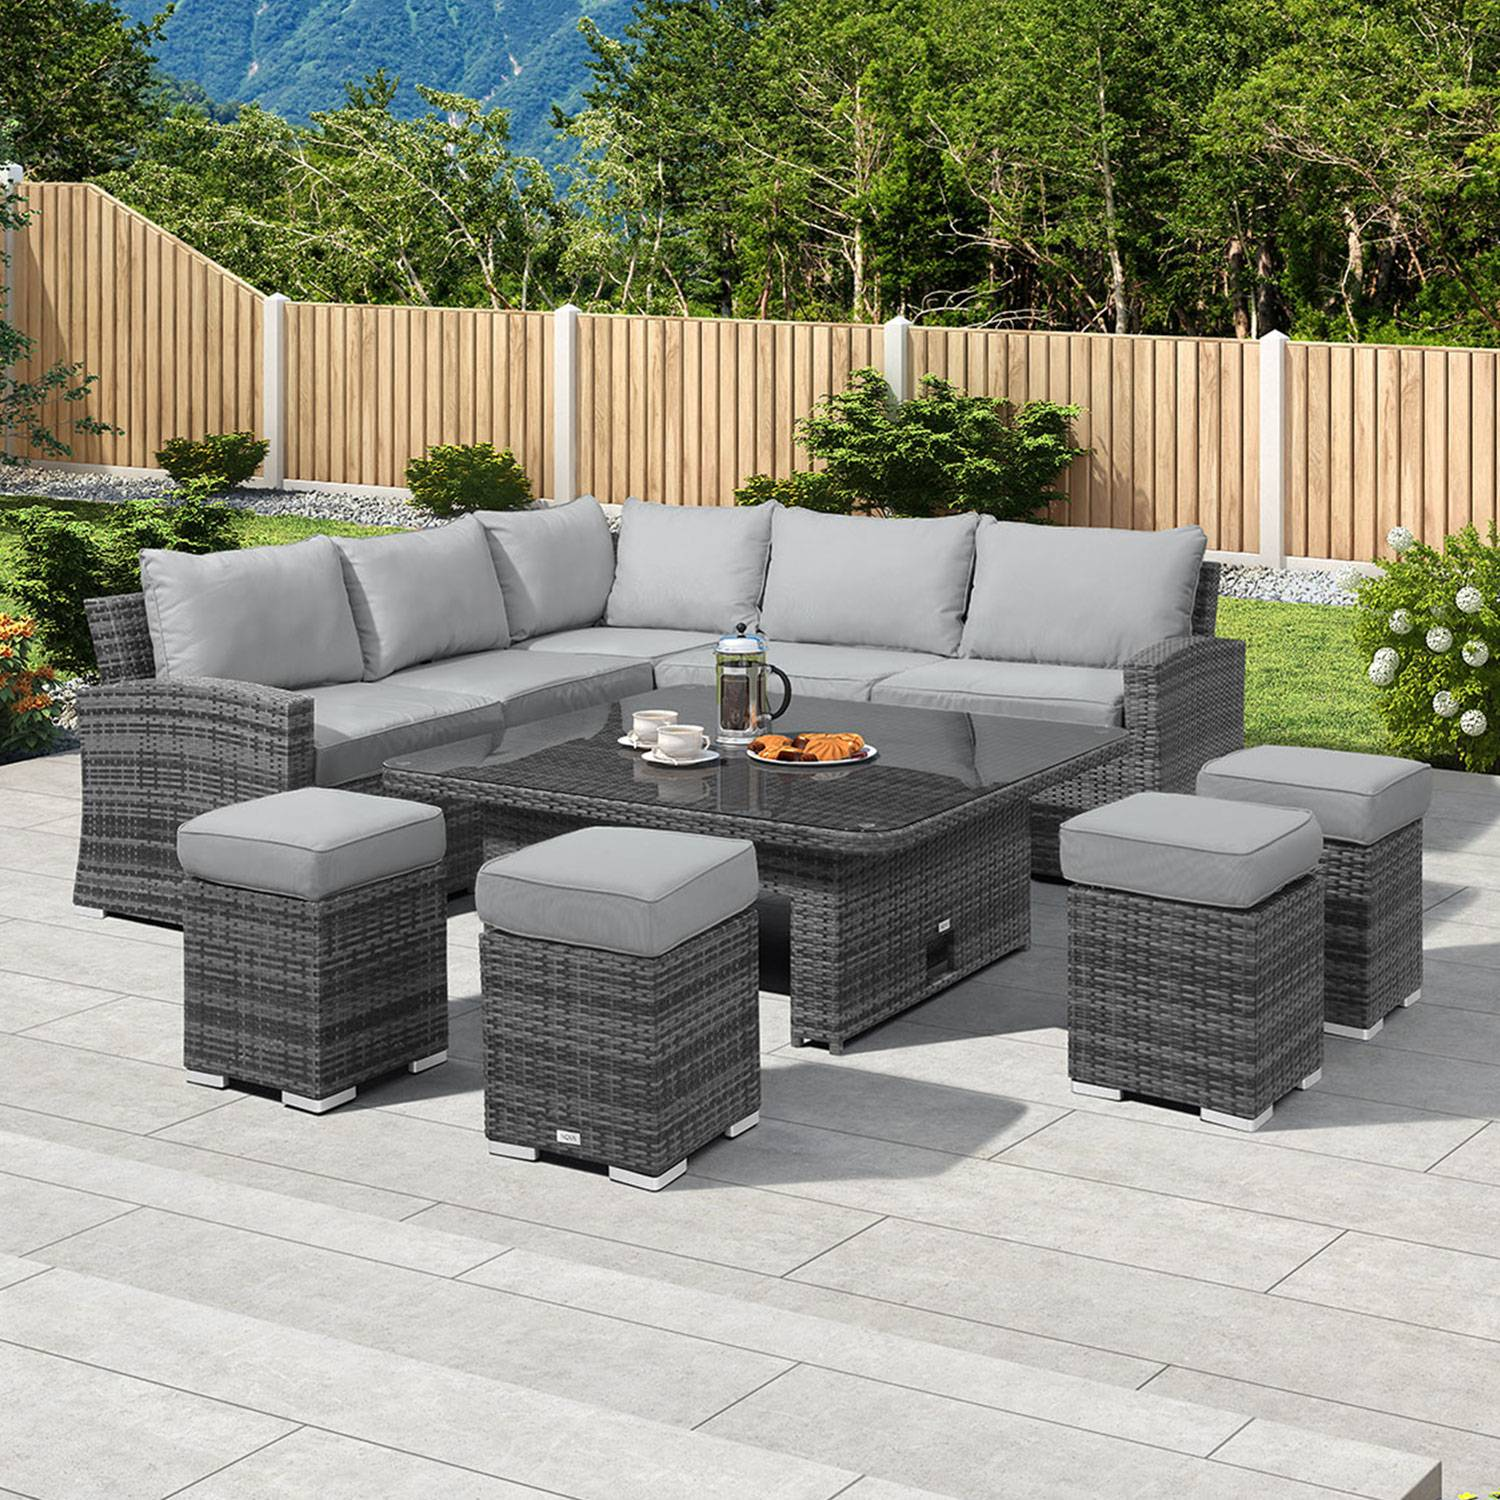 Oakworld Alfresco Cambridge Deluxe Corner Dining Set with Rising Table - Grey